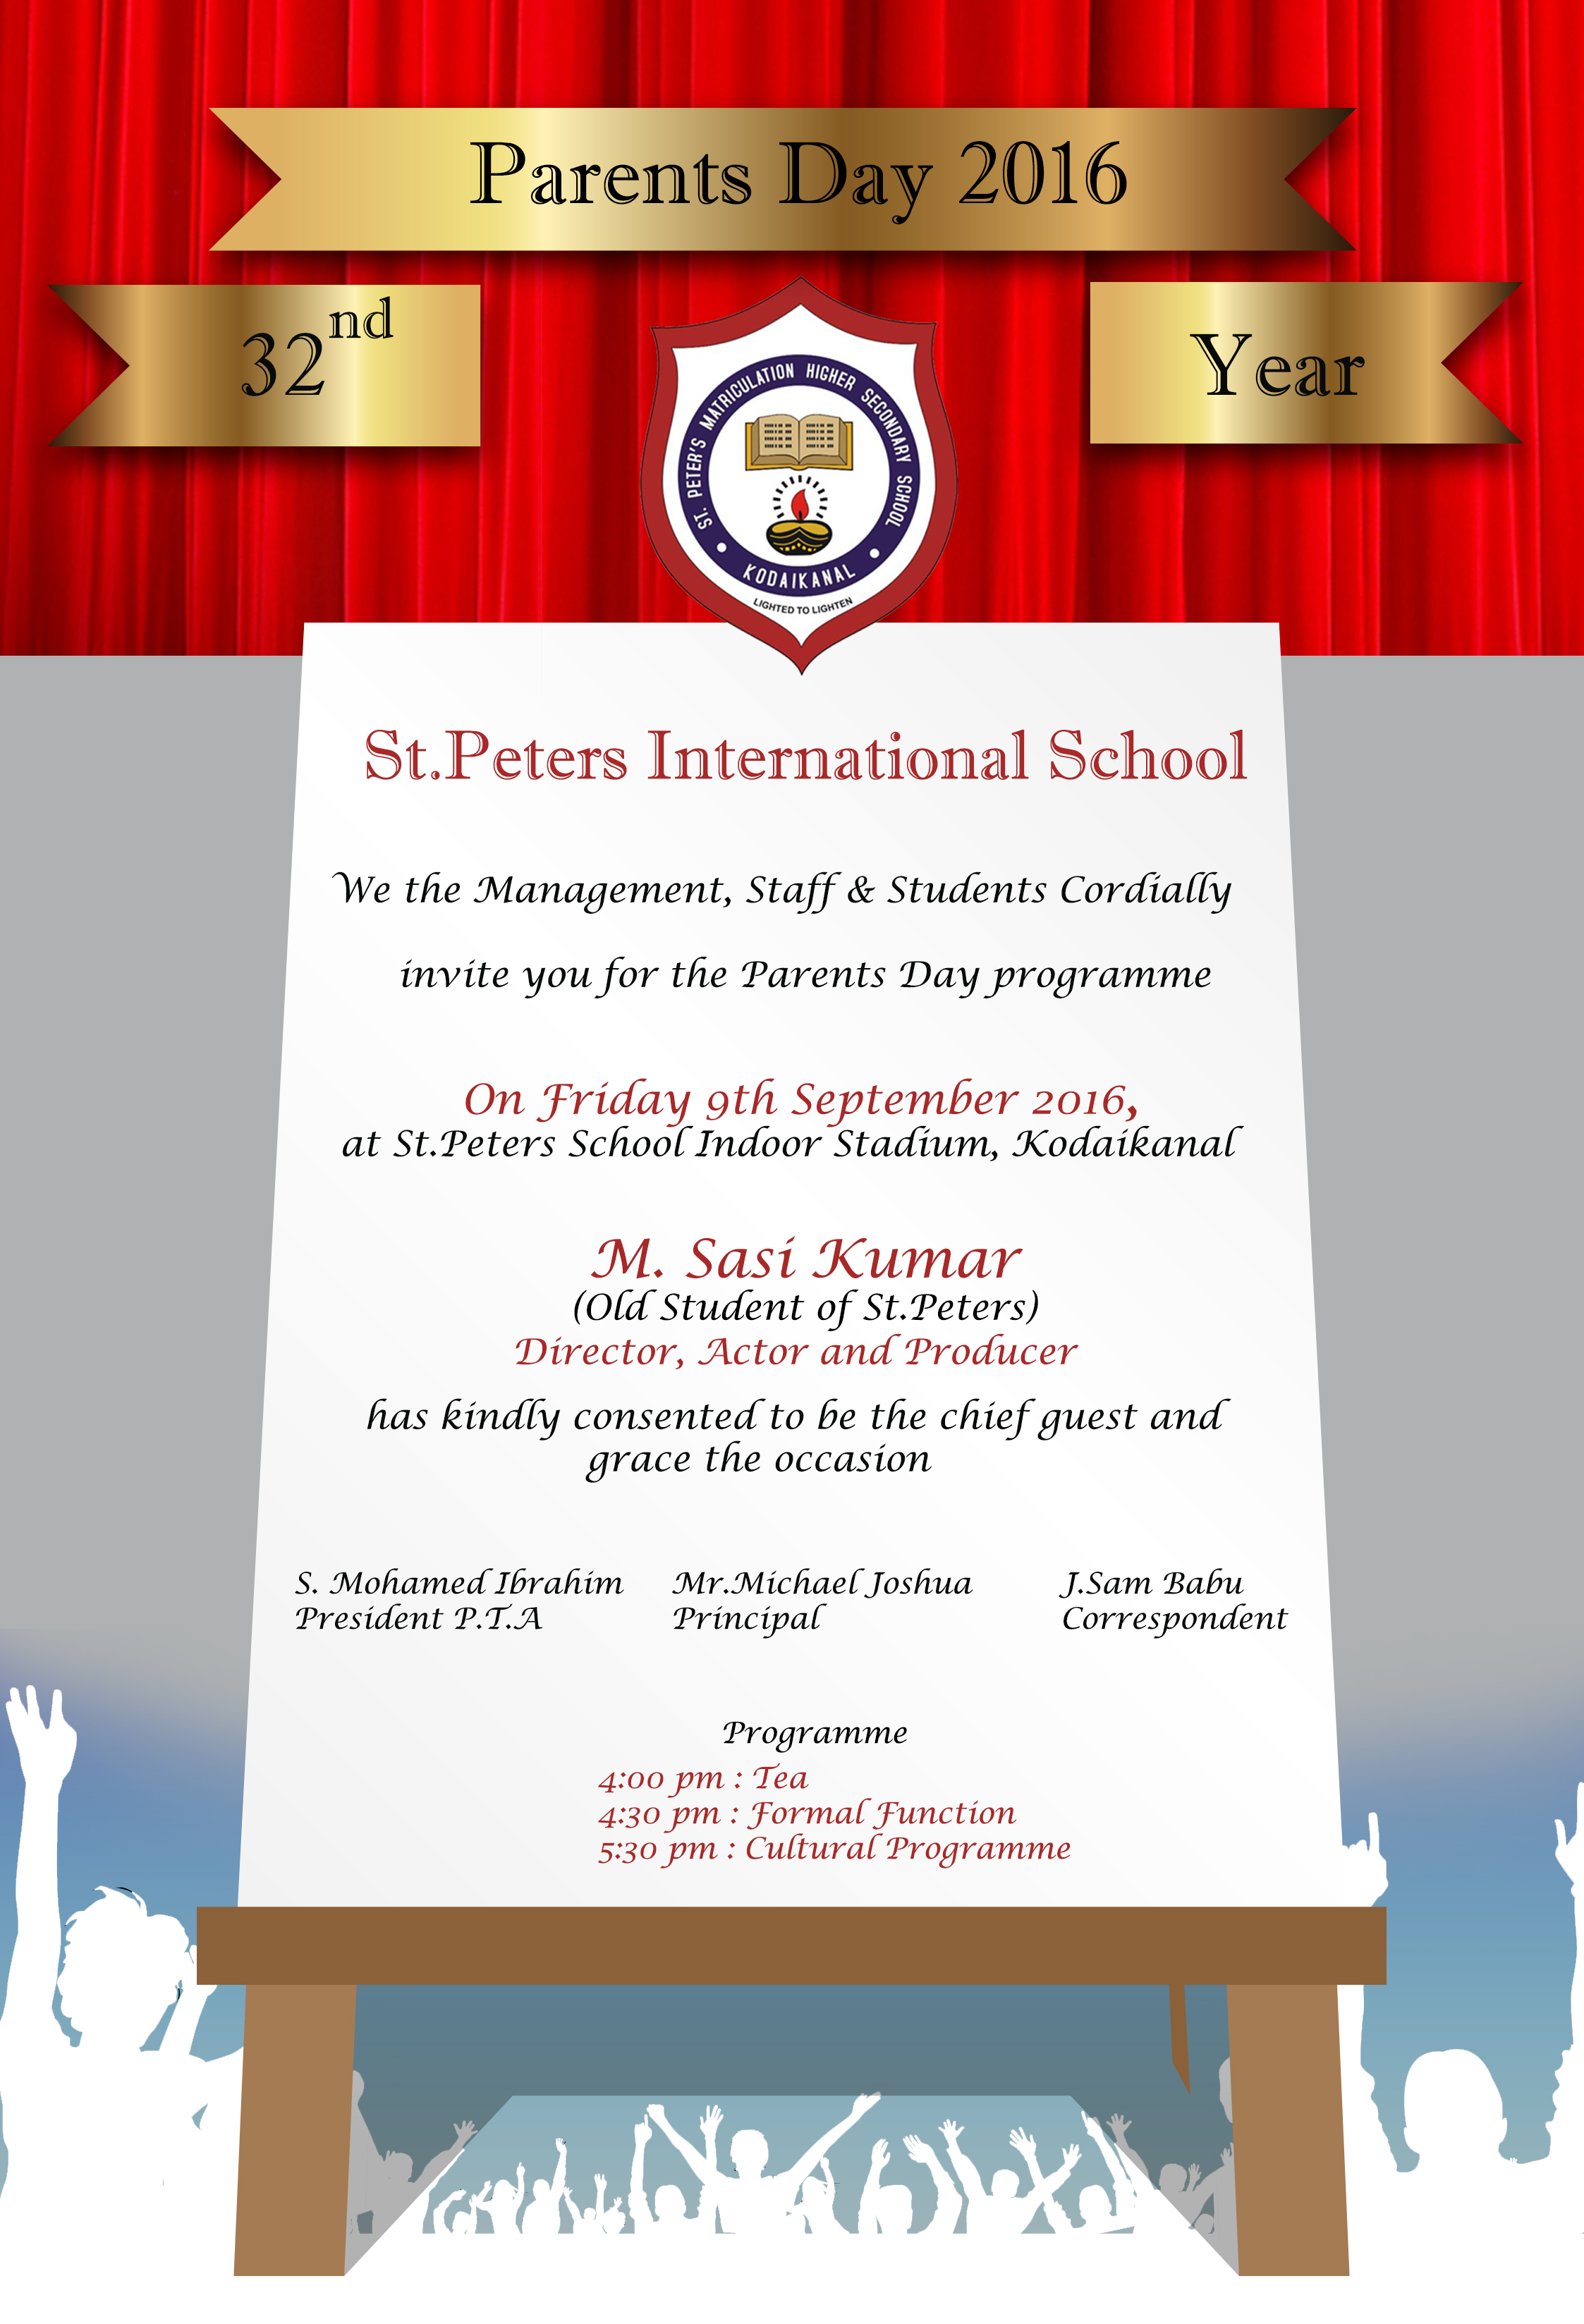 Parents day 2016 invitation st peters international school parents day invite 2016 board8 stopboris Choice Image